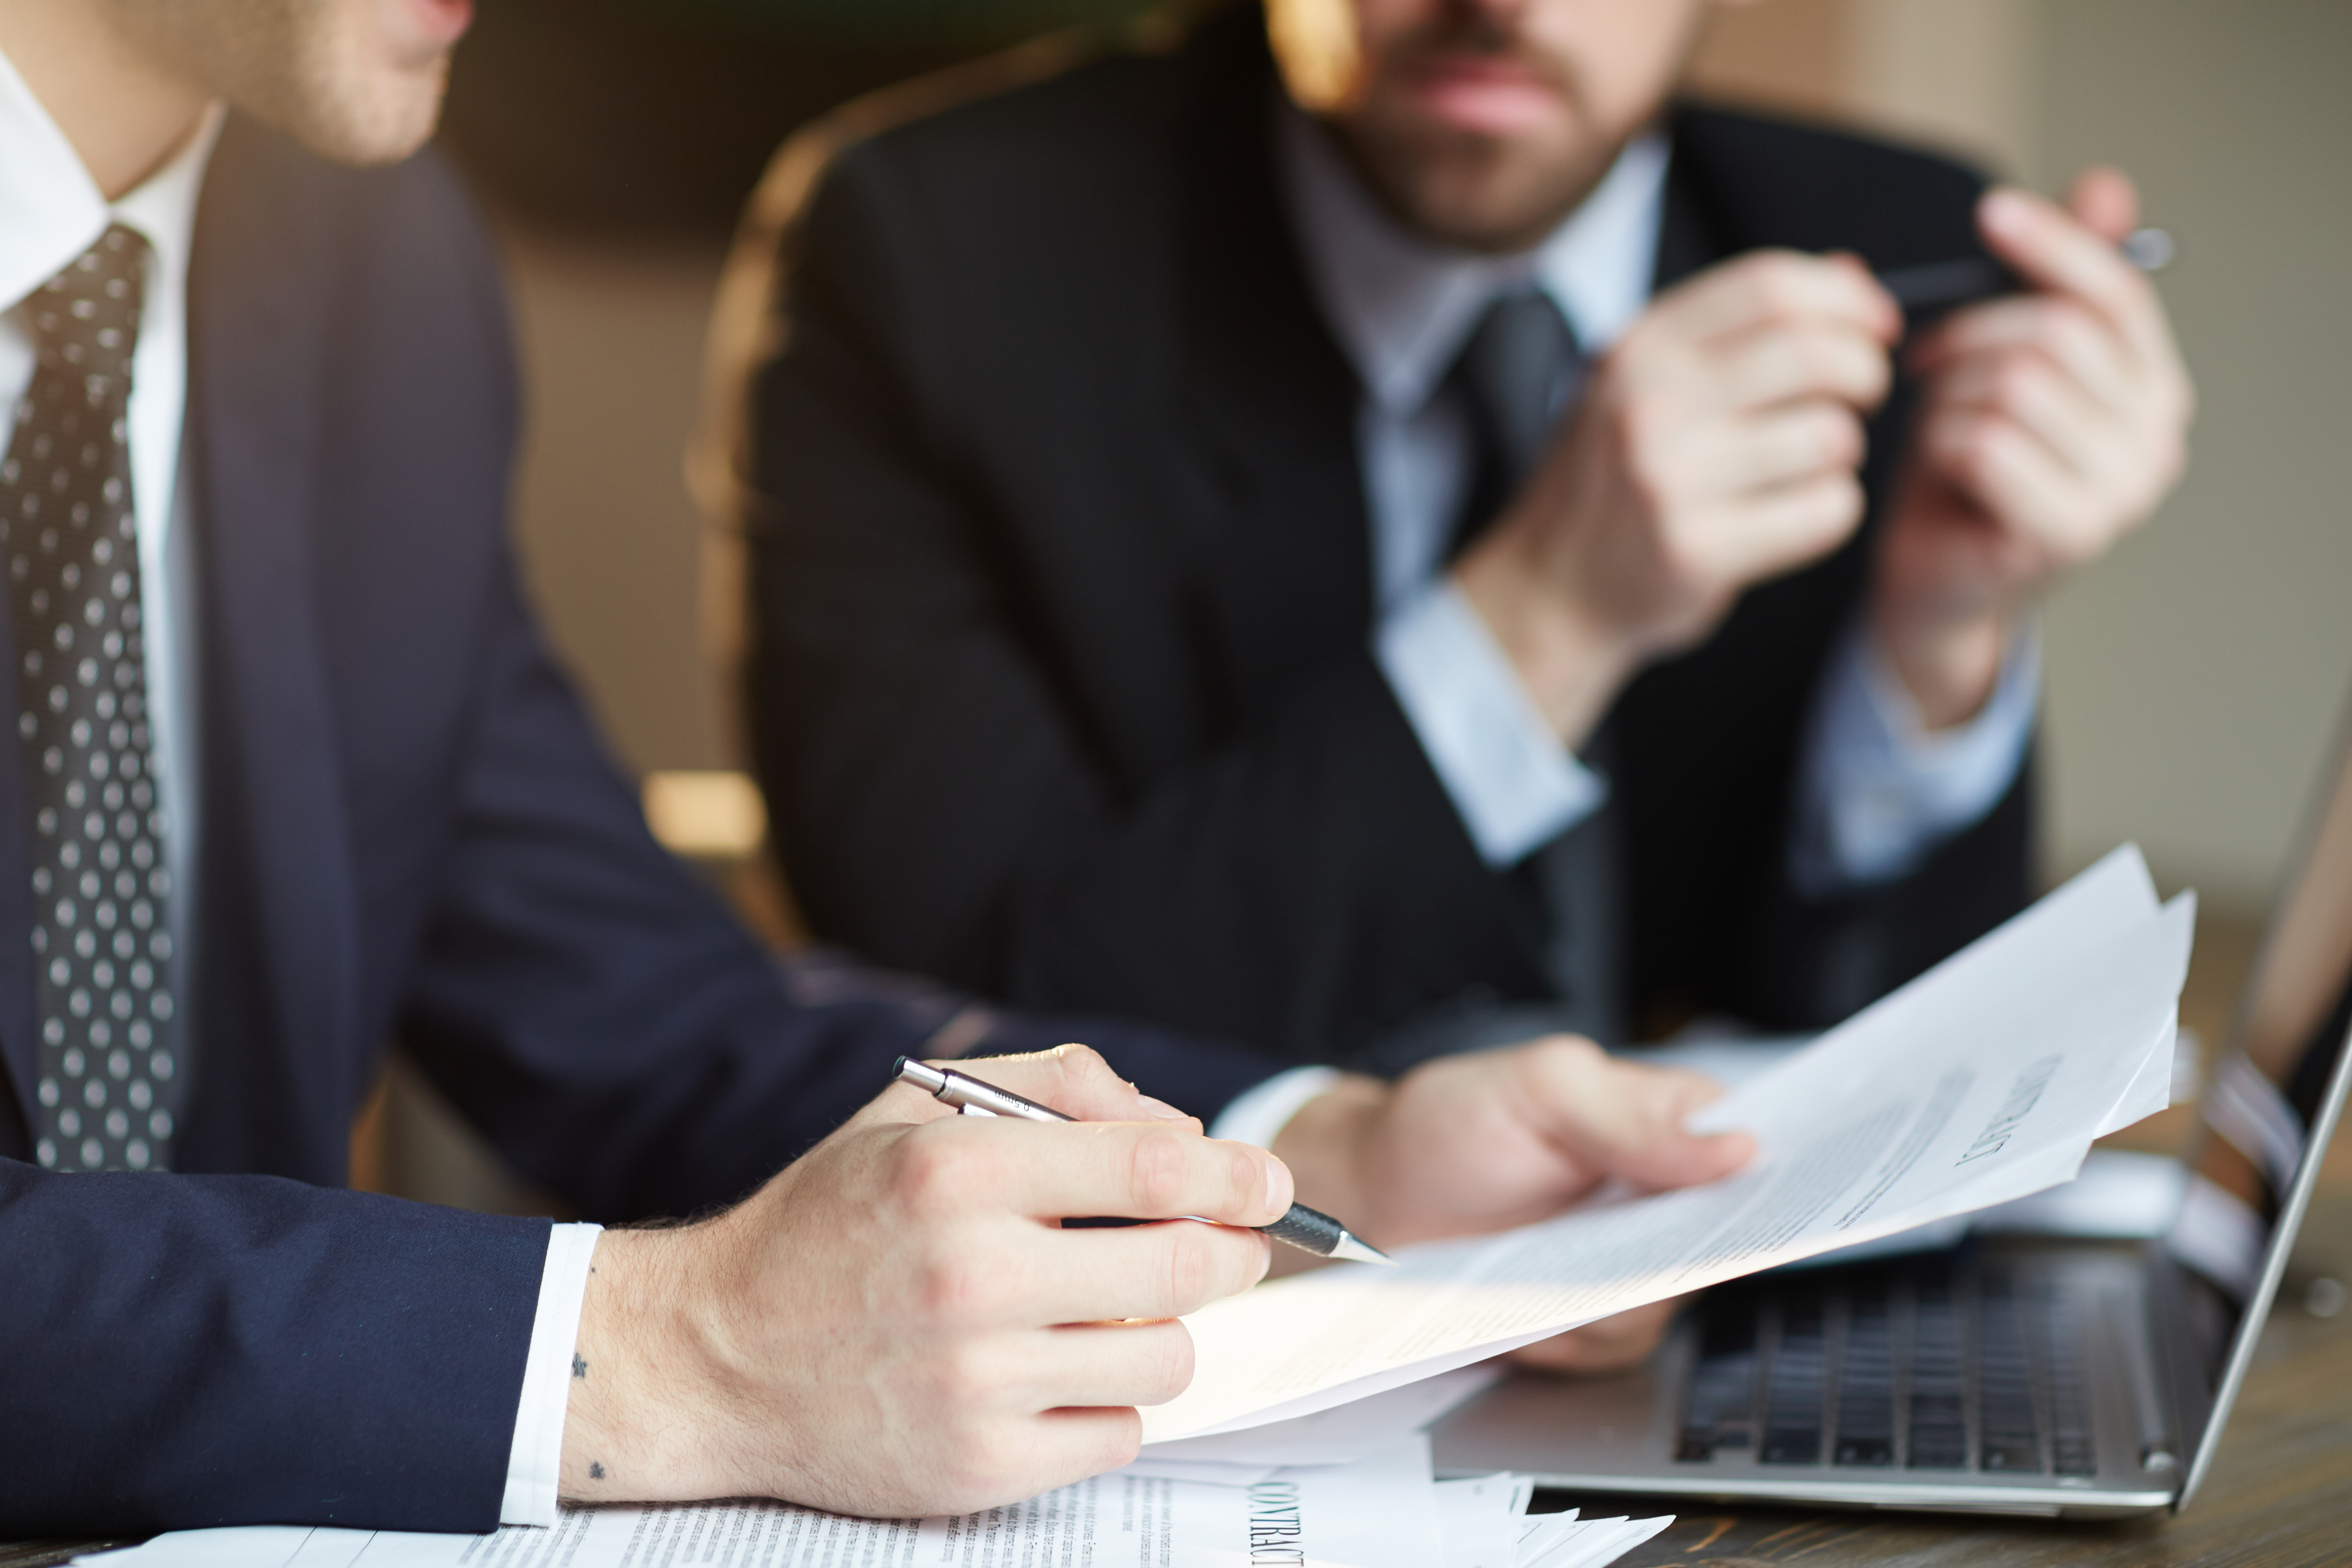 How Do I Know If I Need a Personal Injury Lawyer?